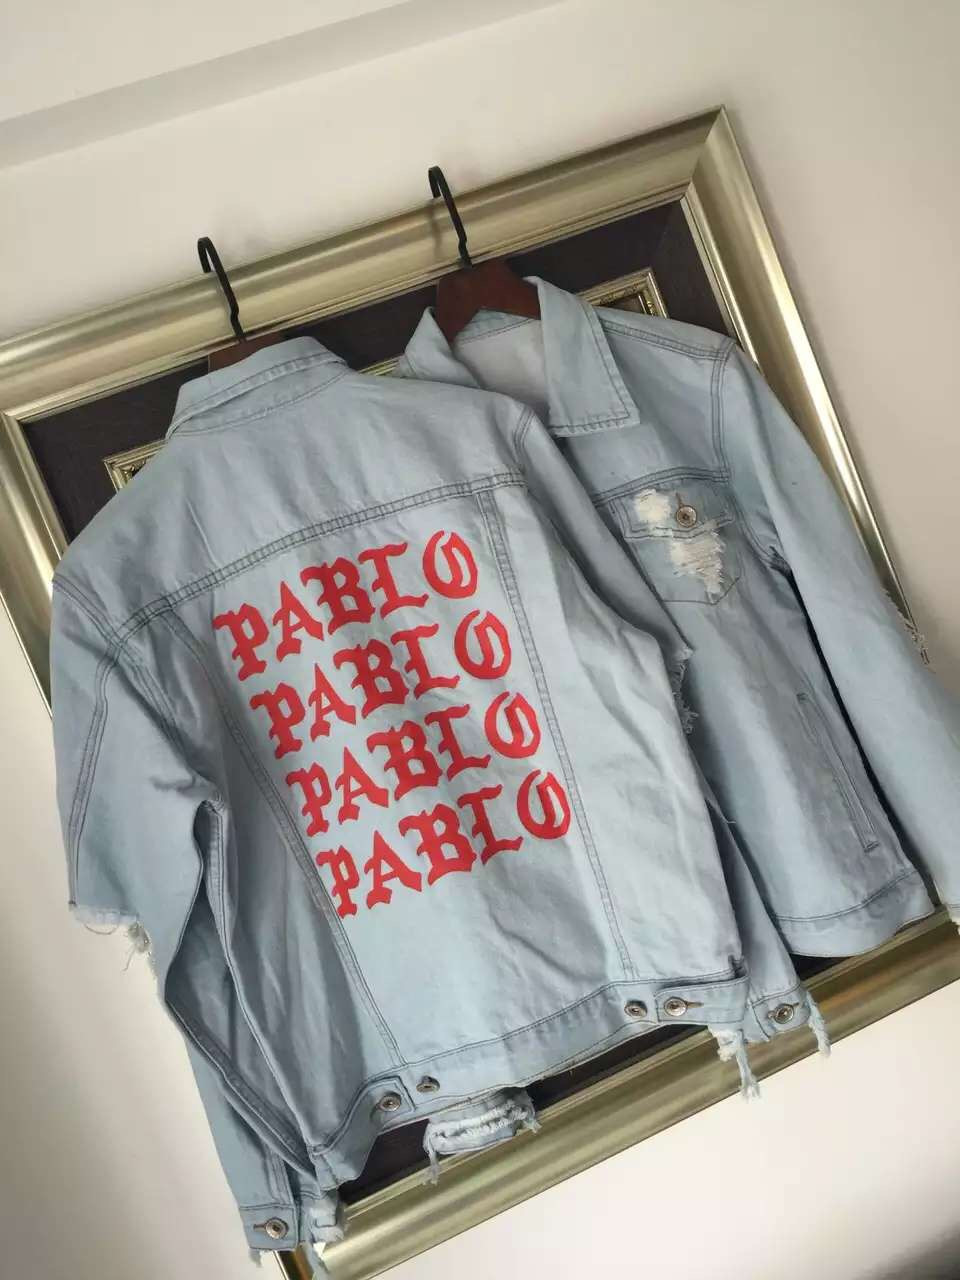 HTB1SZ6pNXXXXXb8XXXXq6xXFXXXB - I Feel Like Pablo Denim Jacket Season 3 Kanye West Pablo Jeans Jacket PTC 03